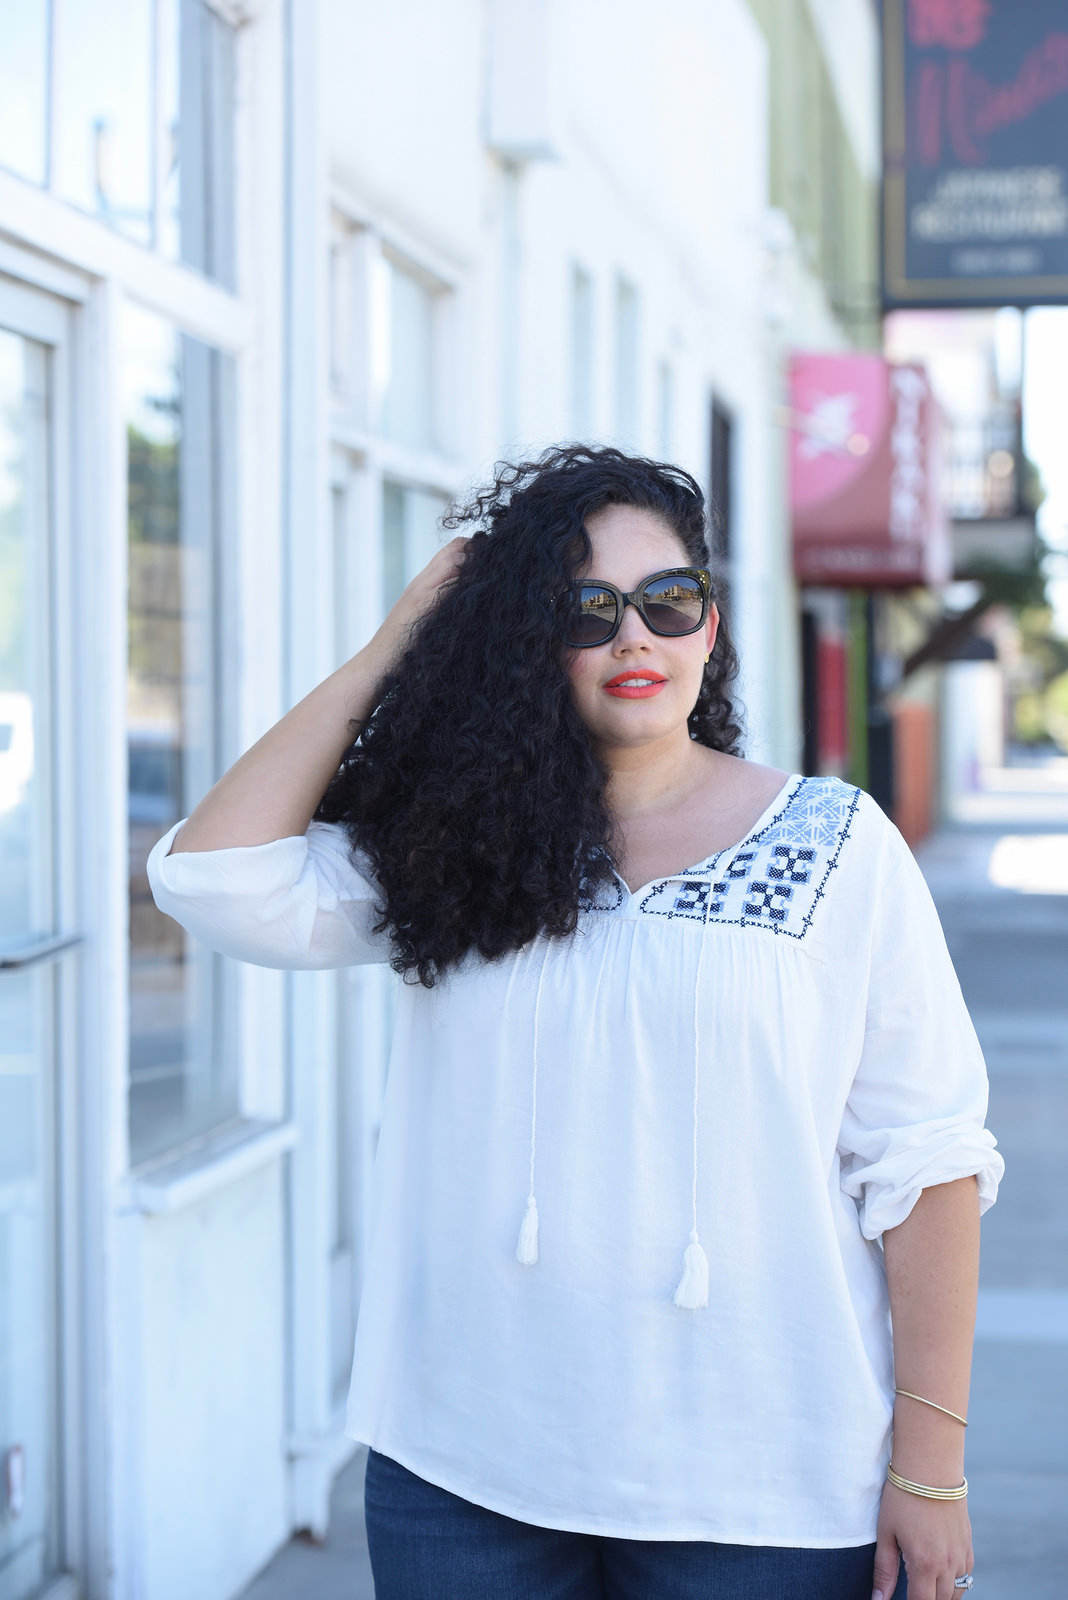 Tanesha Awasthi, also known as Girl With Curves, wearing dark wash plus size skinny jeans, a swing blouse, Celine sunglasses.